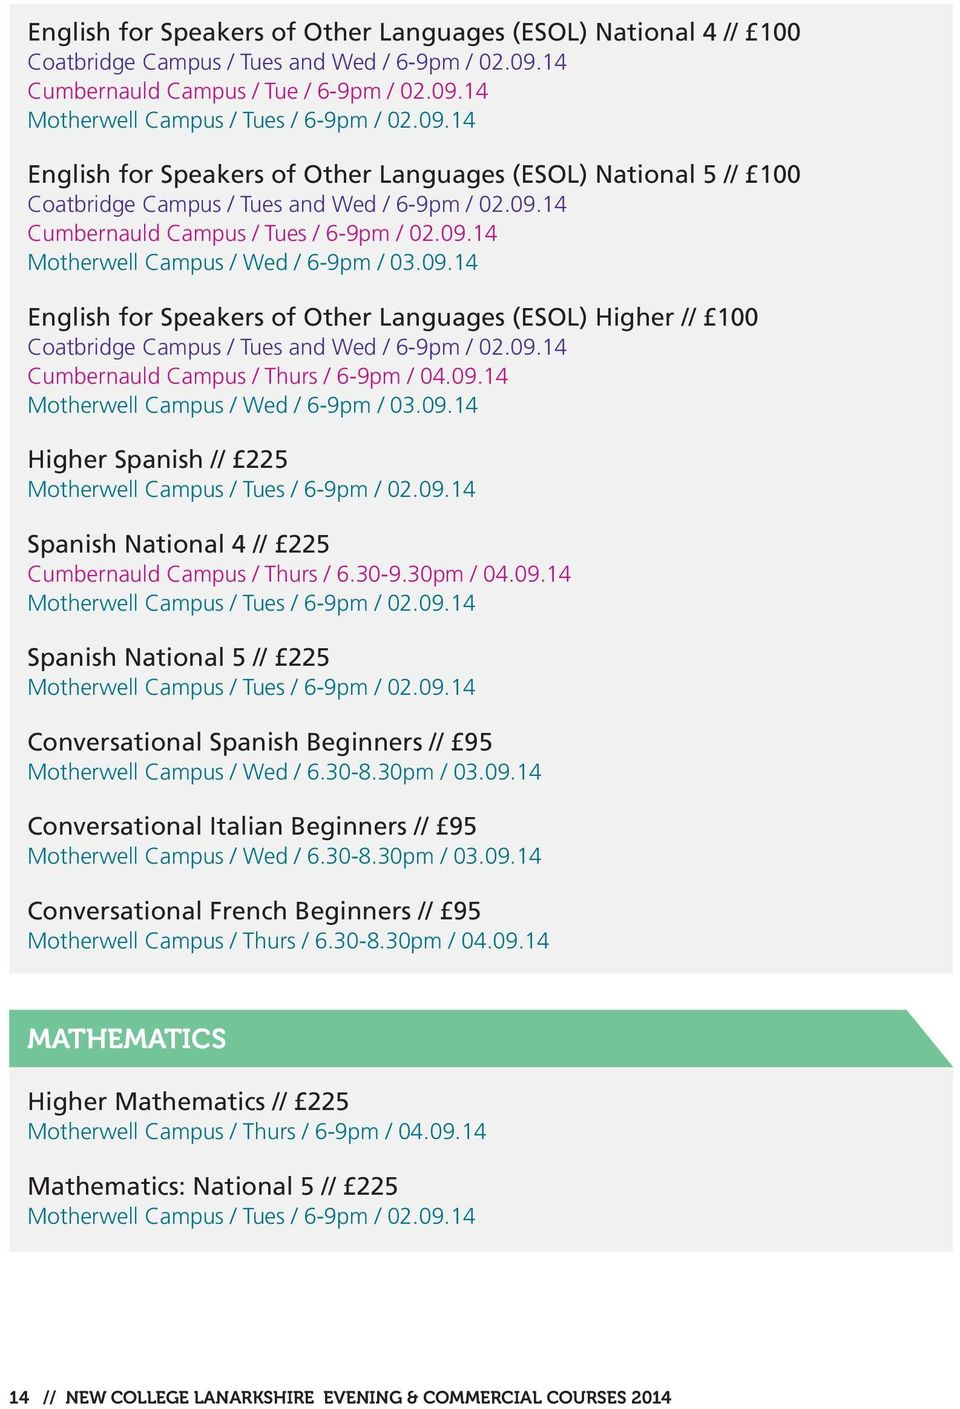 09.14 Motherwell Campus / Wed / 6-9pm / 03.09.14 English for Speakers of Other Languages (ESOL) Higher // 100 Coatbridge Campus / Tues and Wed / 6-9pm / 02.09.14 Cumbernauld Campus / Thurs / 6-9pm / 04.